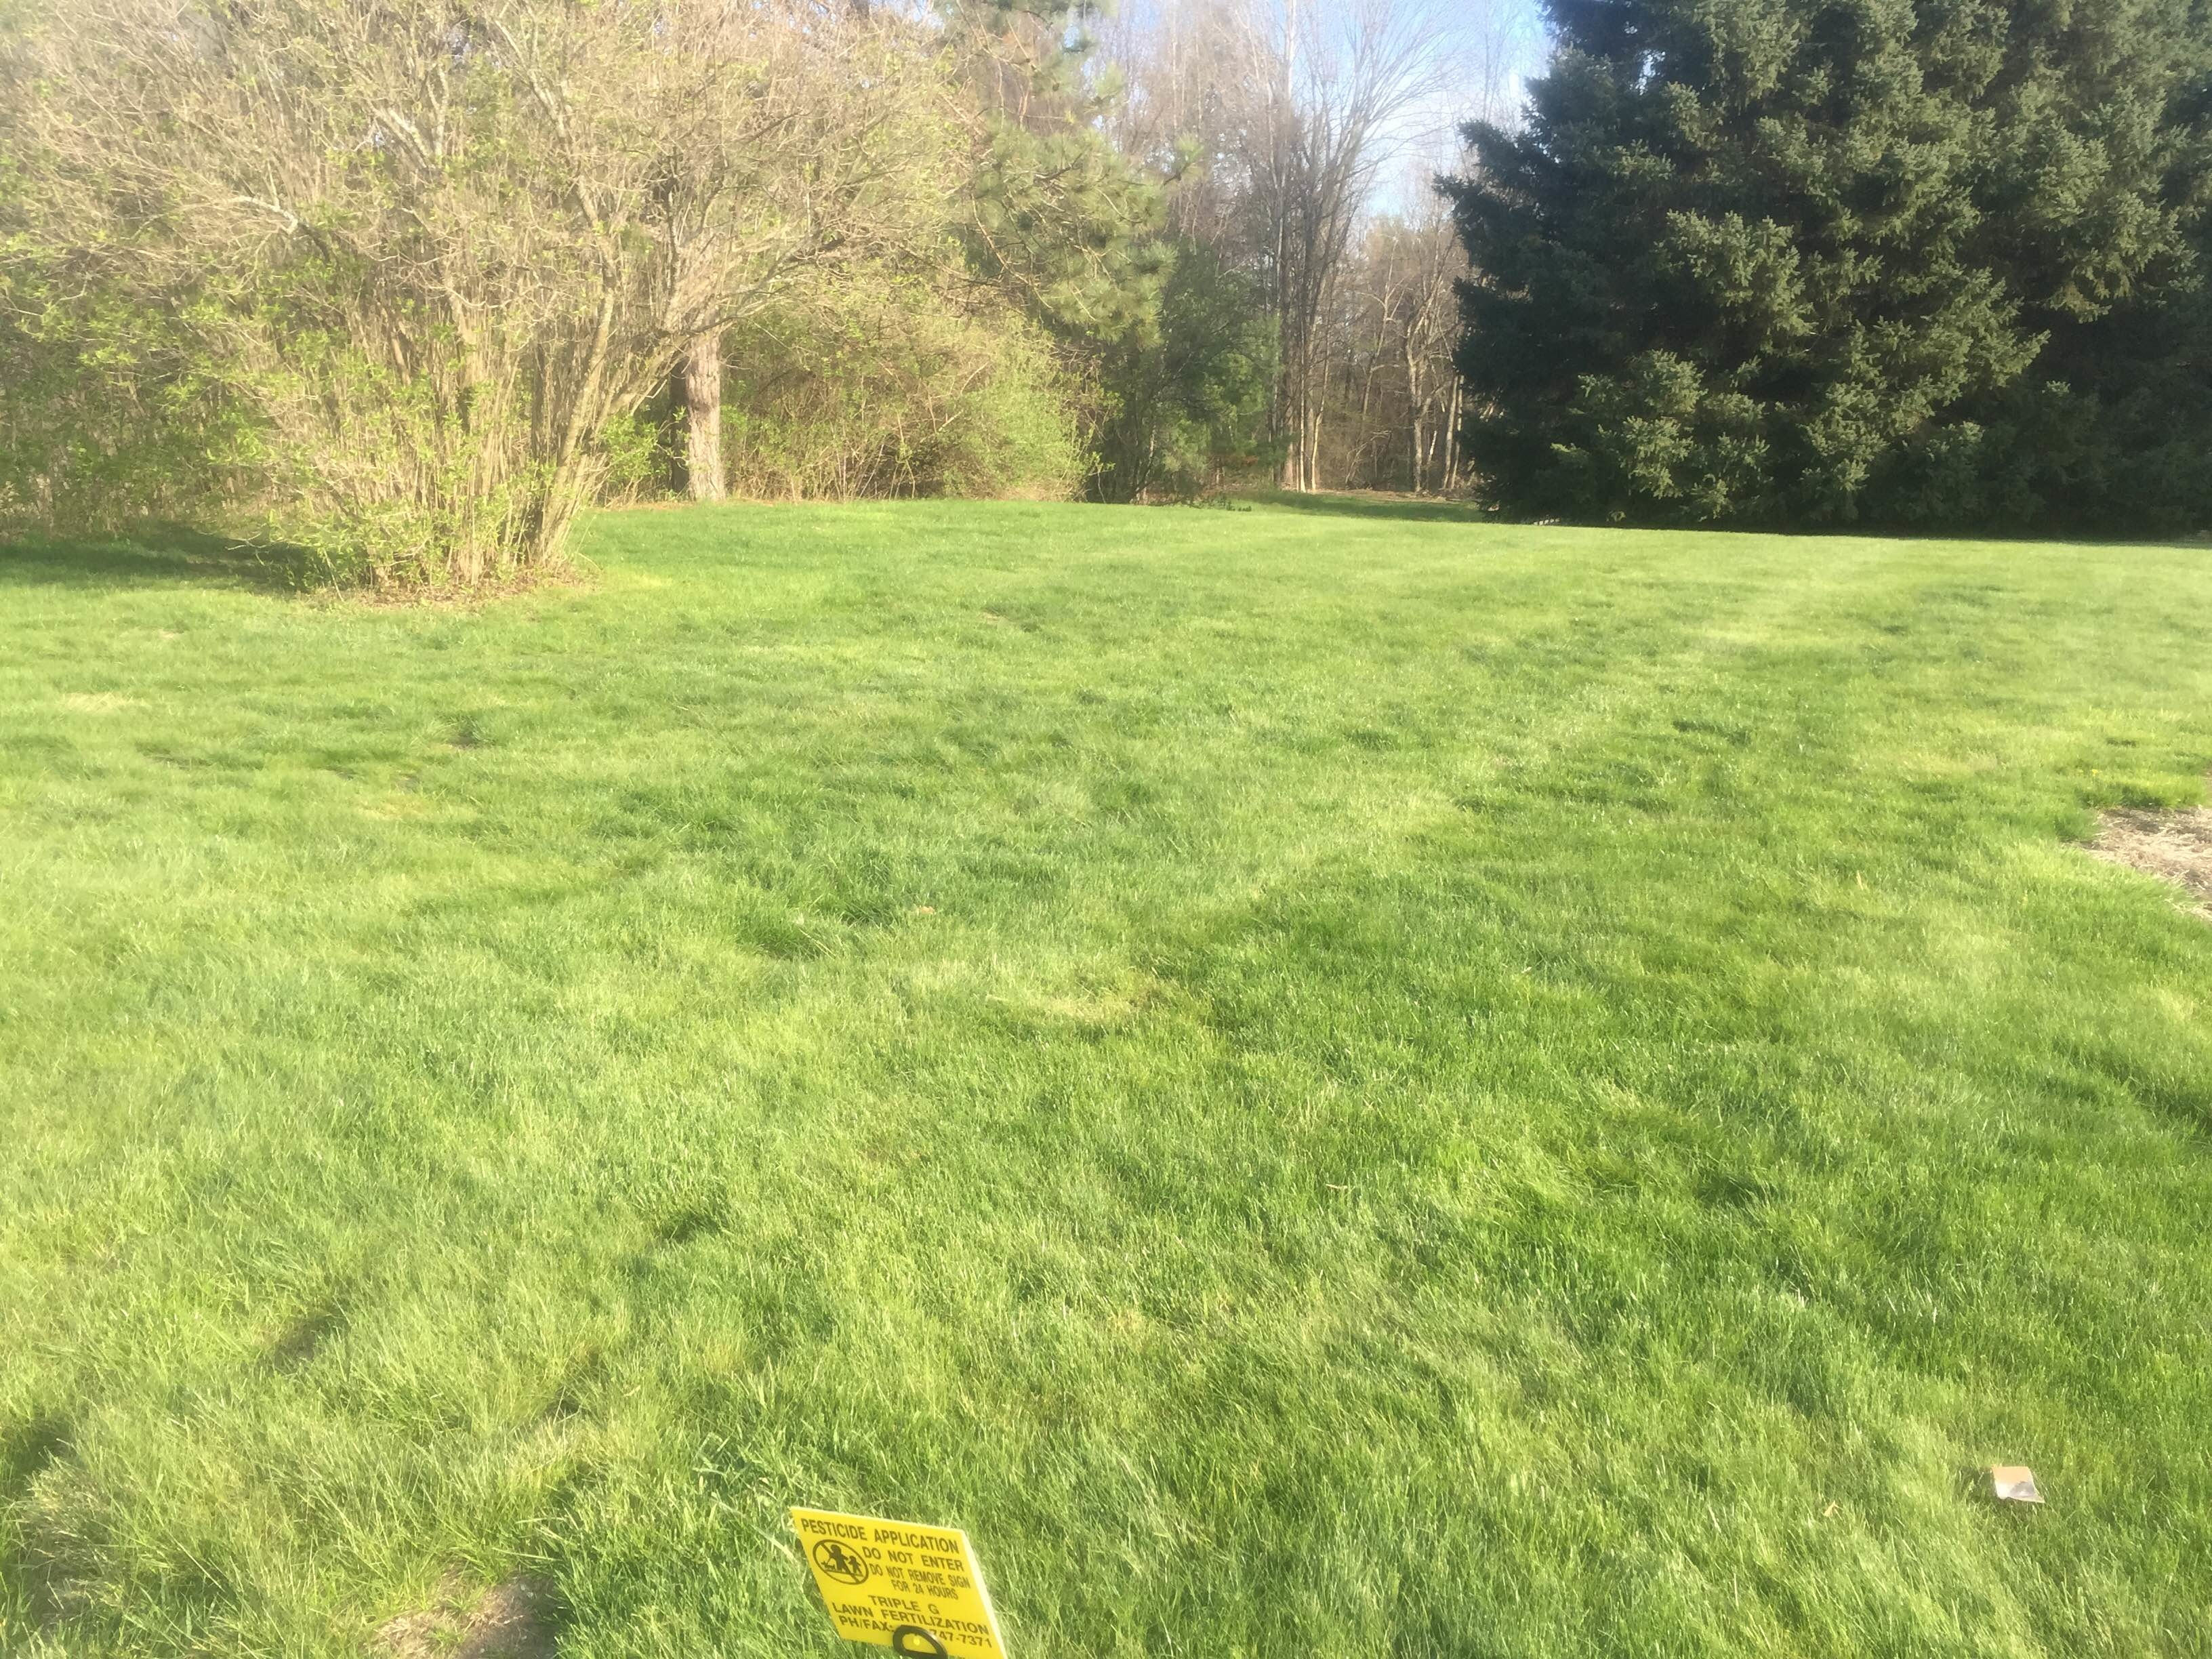 Triple g lawn fertilization lawn care service fort for Local lawn care services